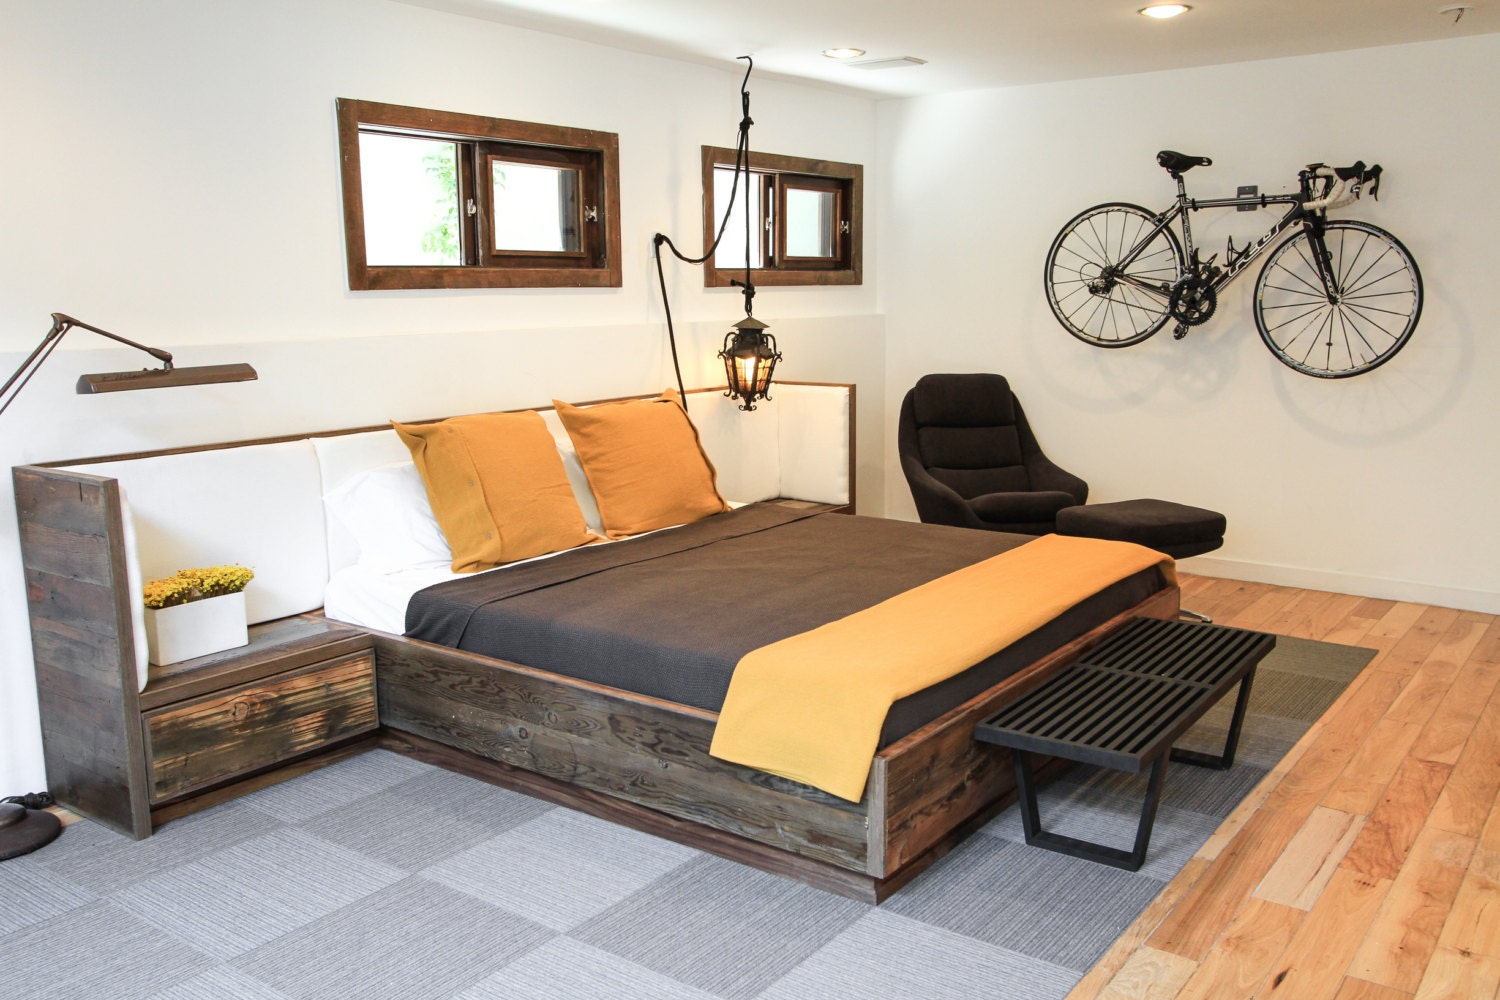 Reclaimed Wood Bed ~ Reclaimed wood bed with upholsterd headboard and nightstands